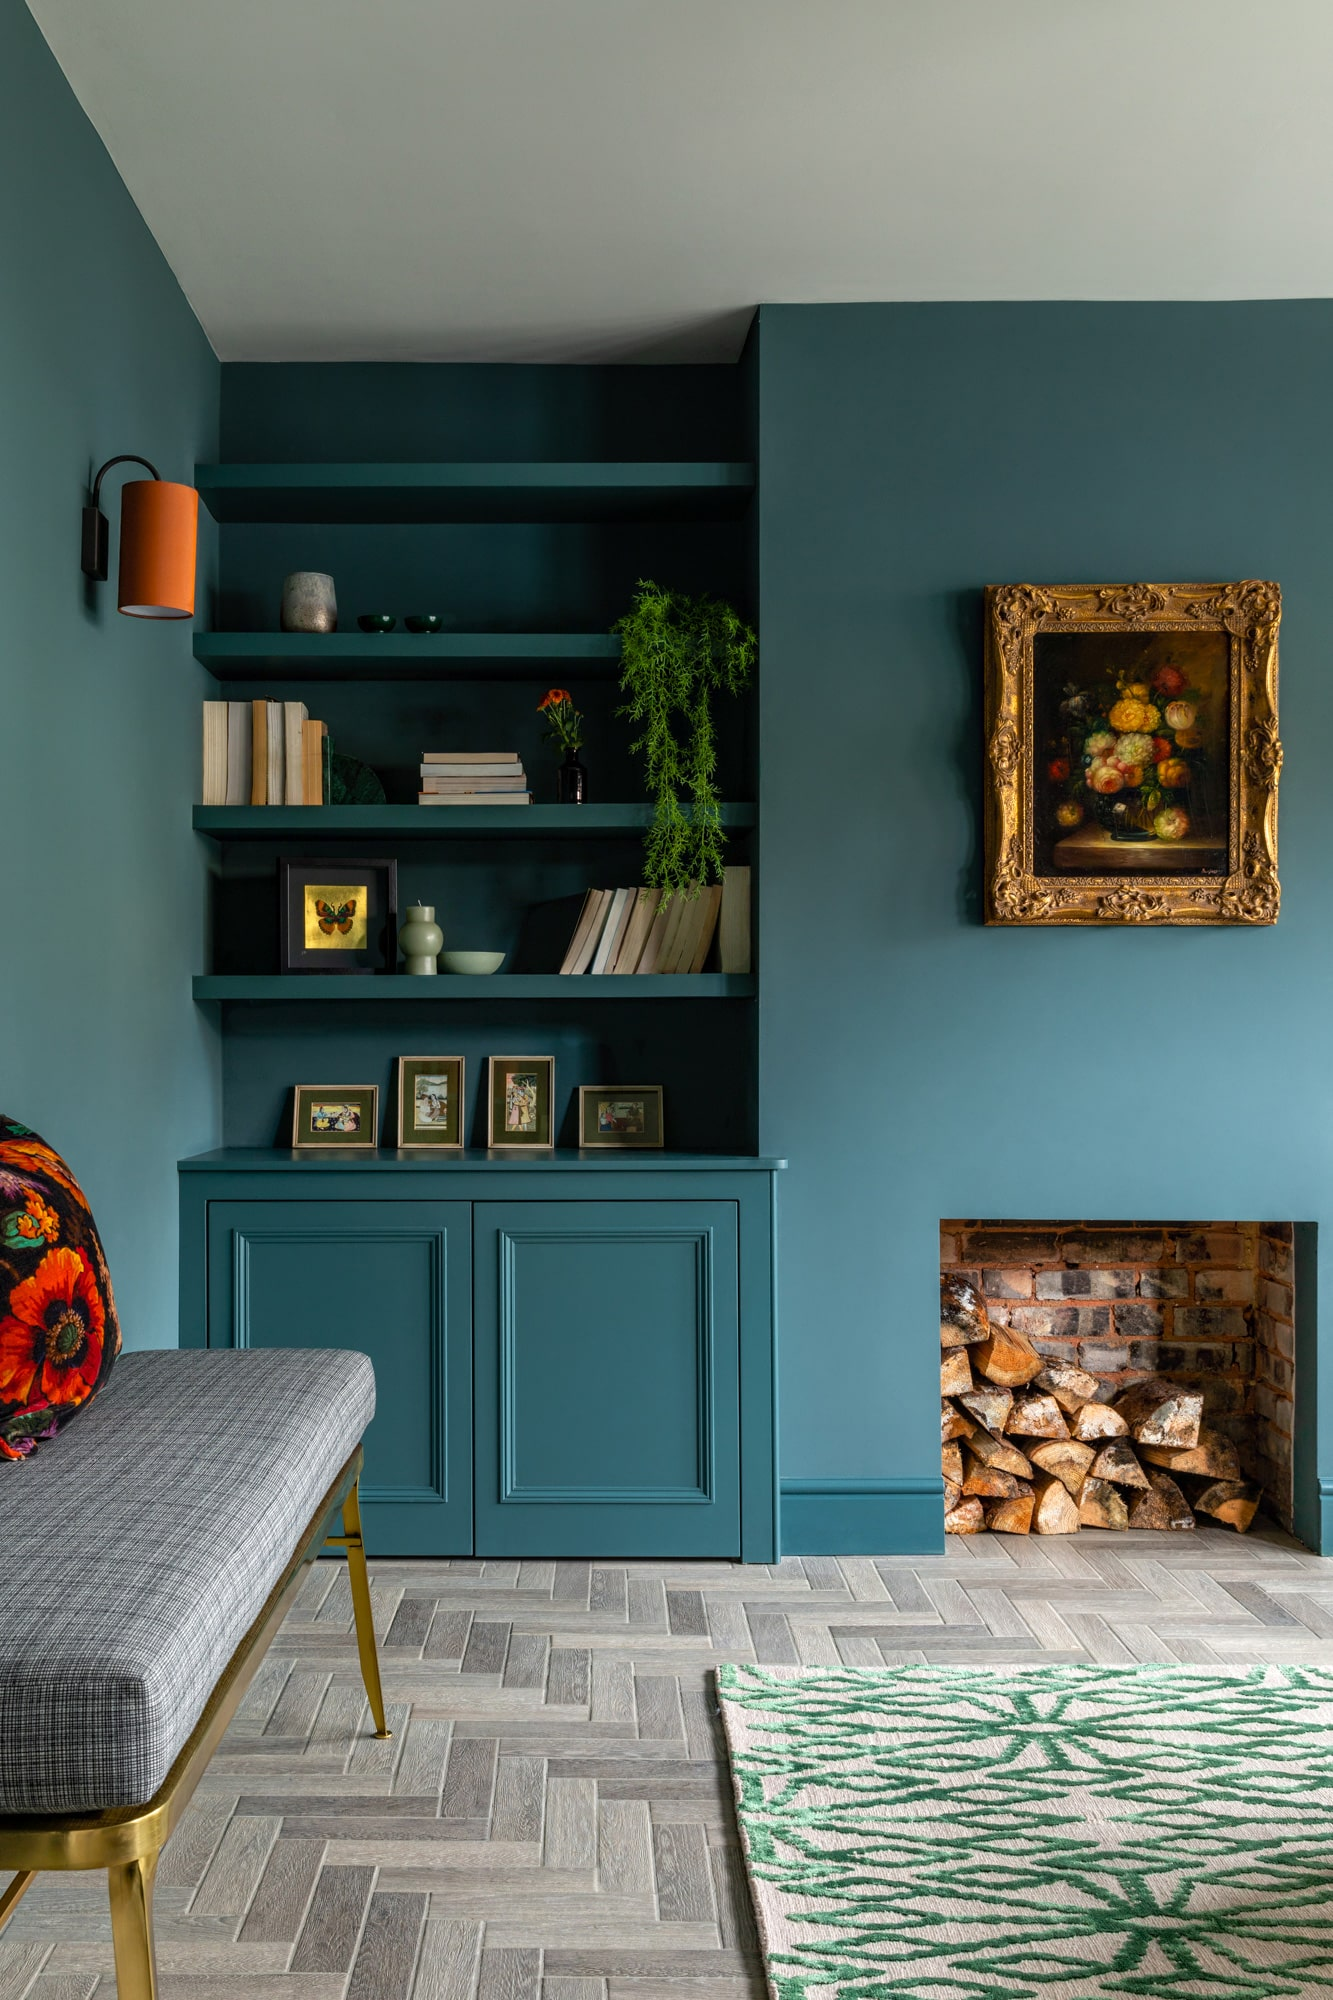 interior design photography: a sitting room with dark blue walls, a fireplace with wood logs, built in shelves and cardboard with plant pots and books